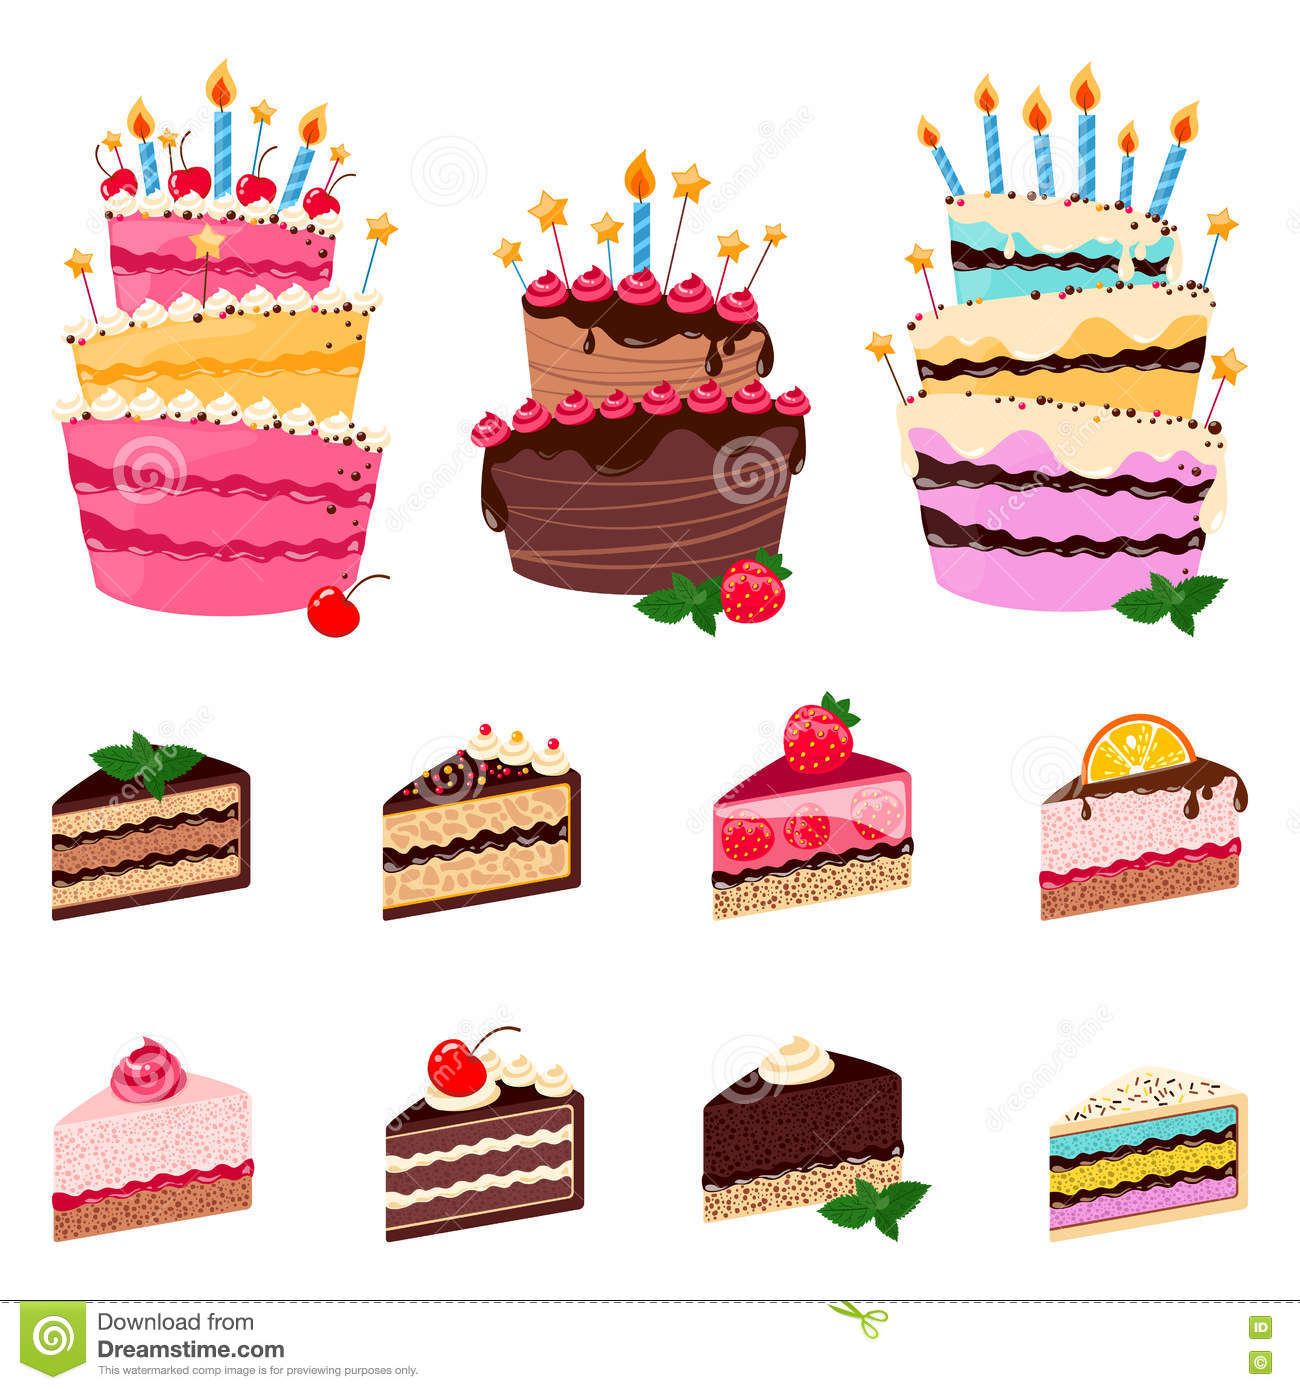 Colorful Sweet Cakes And Cakes Slices Pieces On White